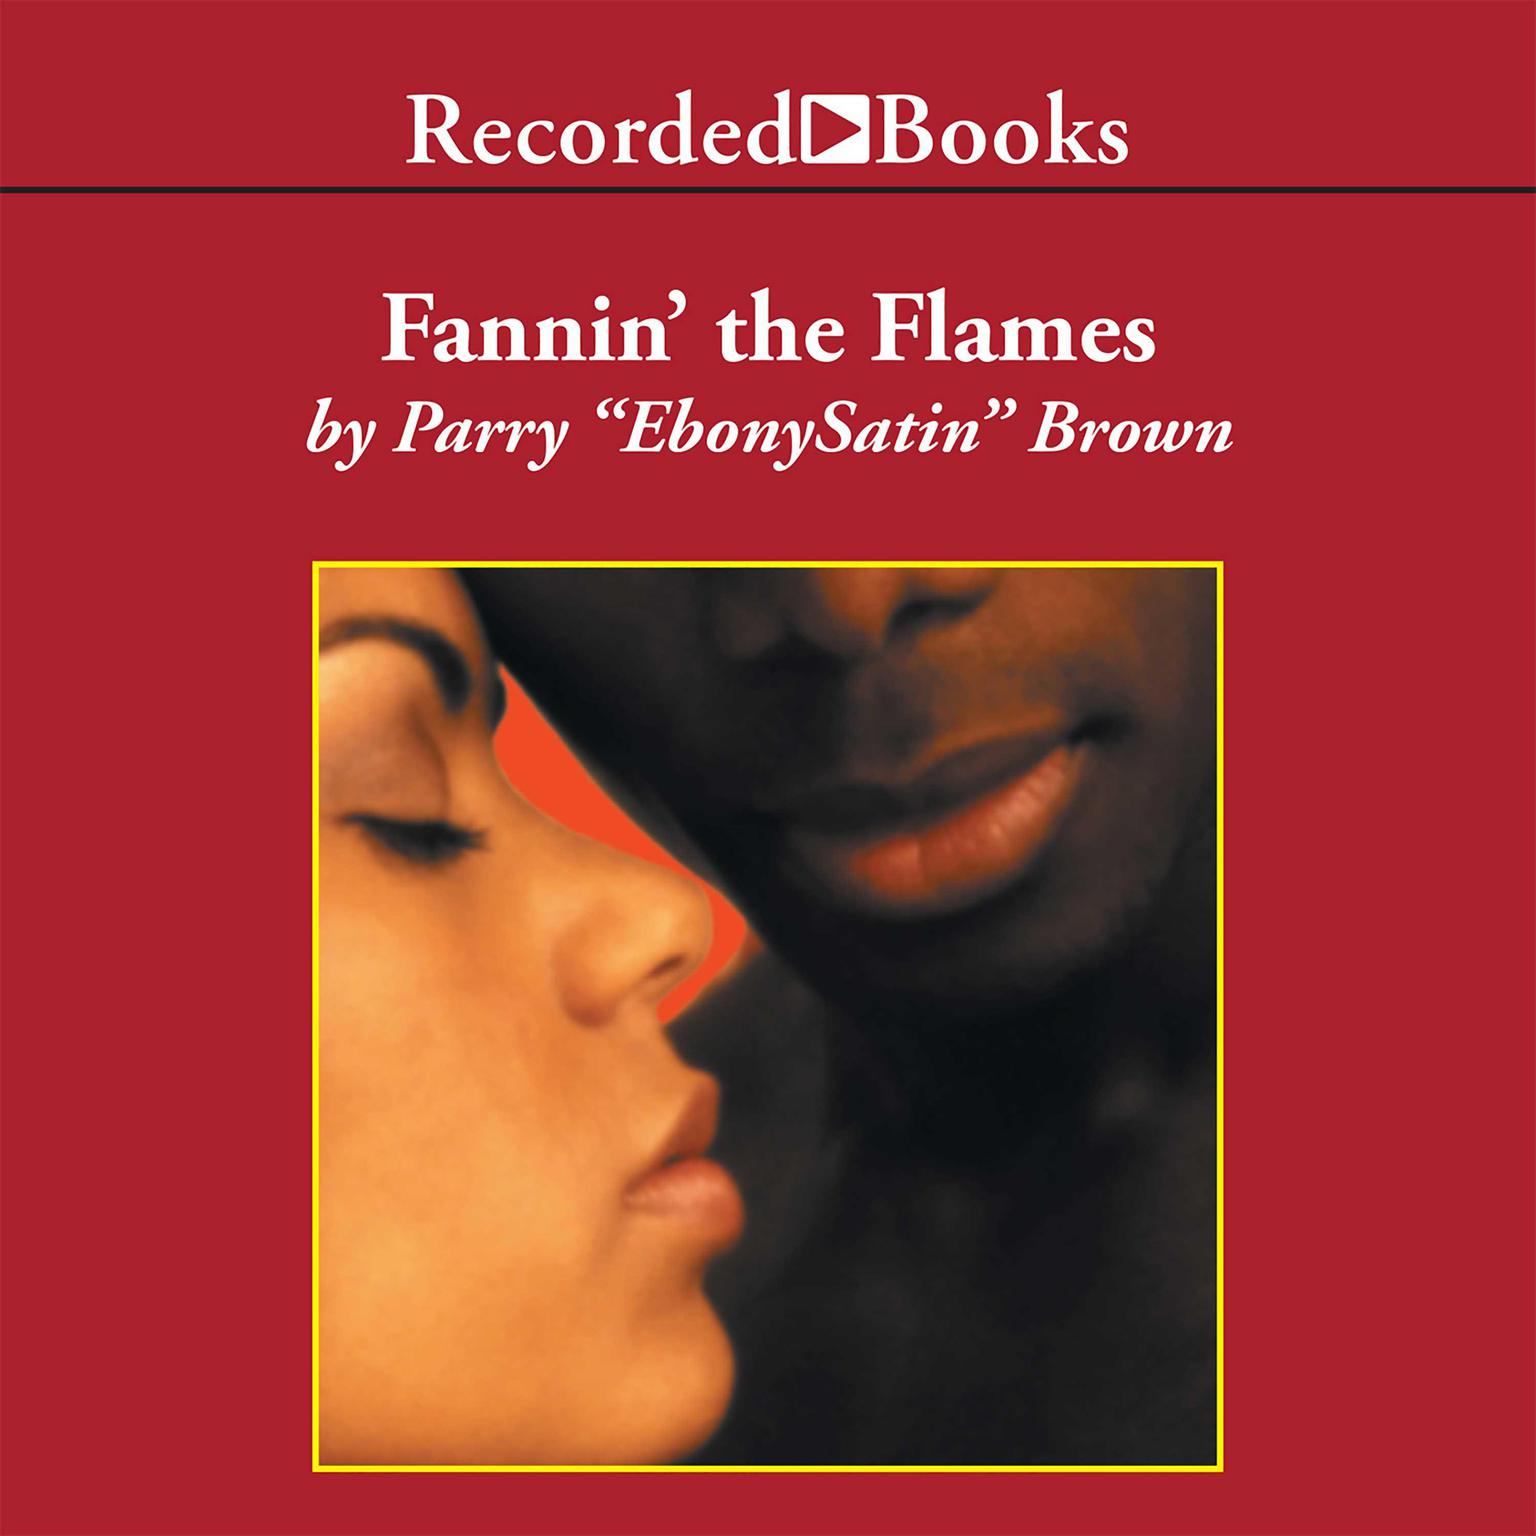 Printable Fannin' the Flames: A Novel Audiobook Cover Art